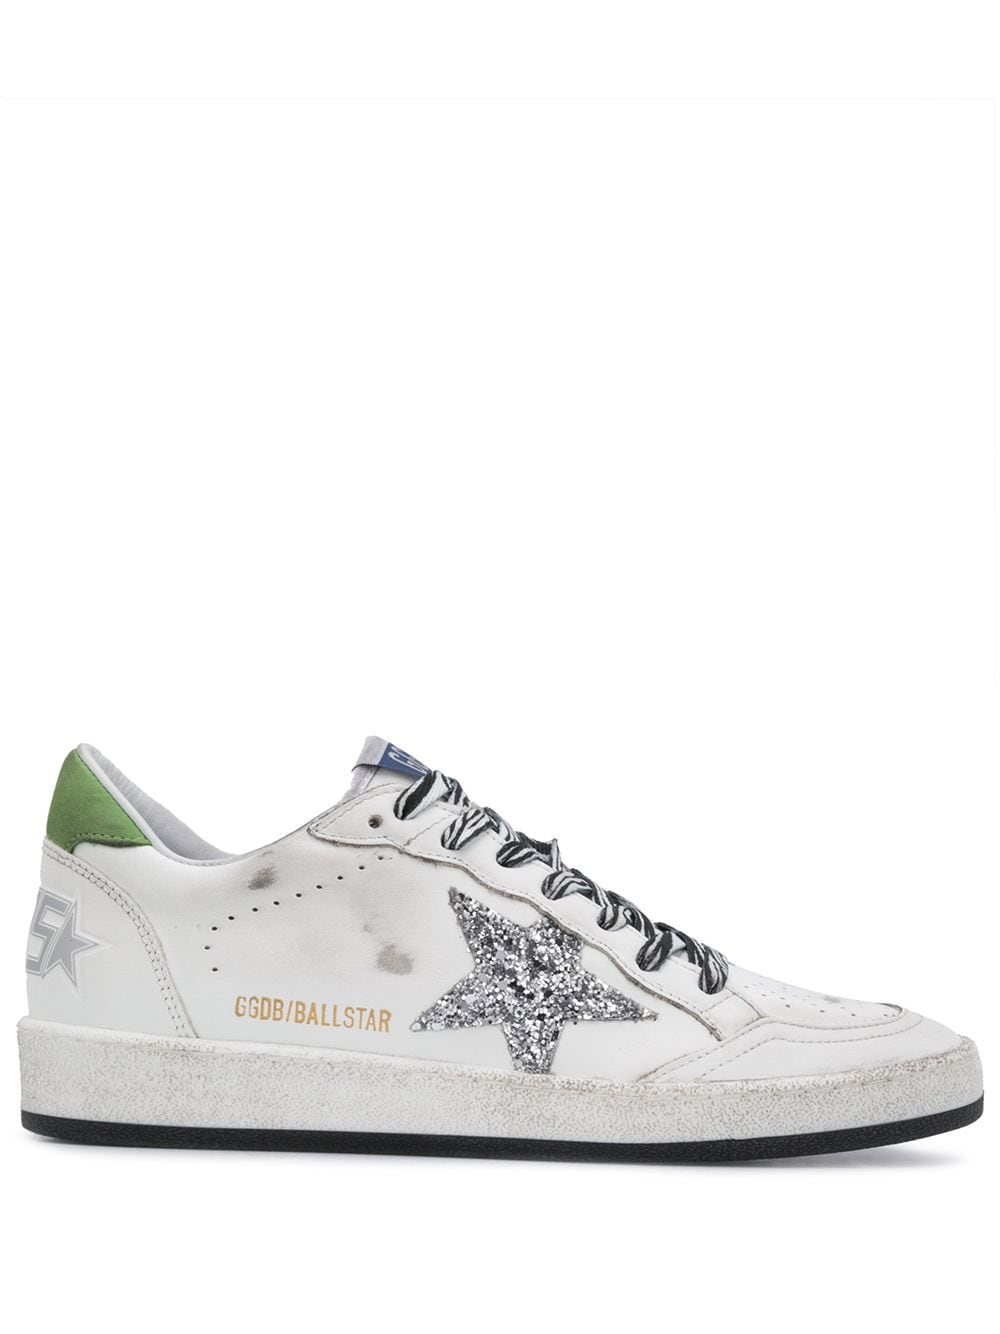 Picture of Golden Goose Deluxe Brand | Ball Star Low-Top Sneakers